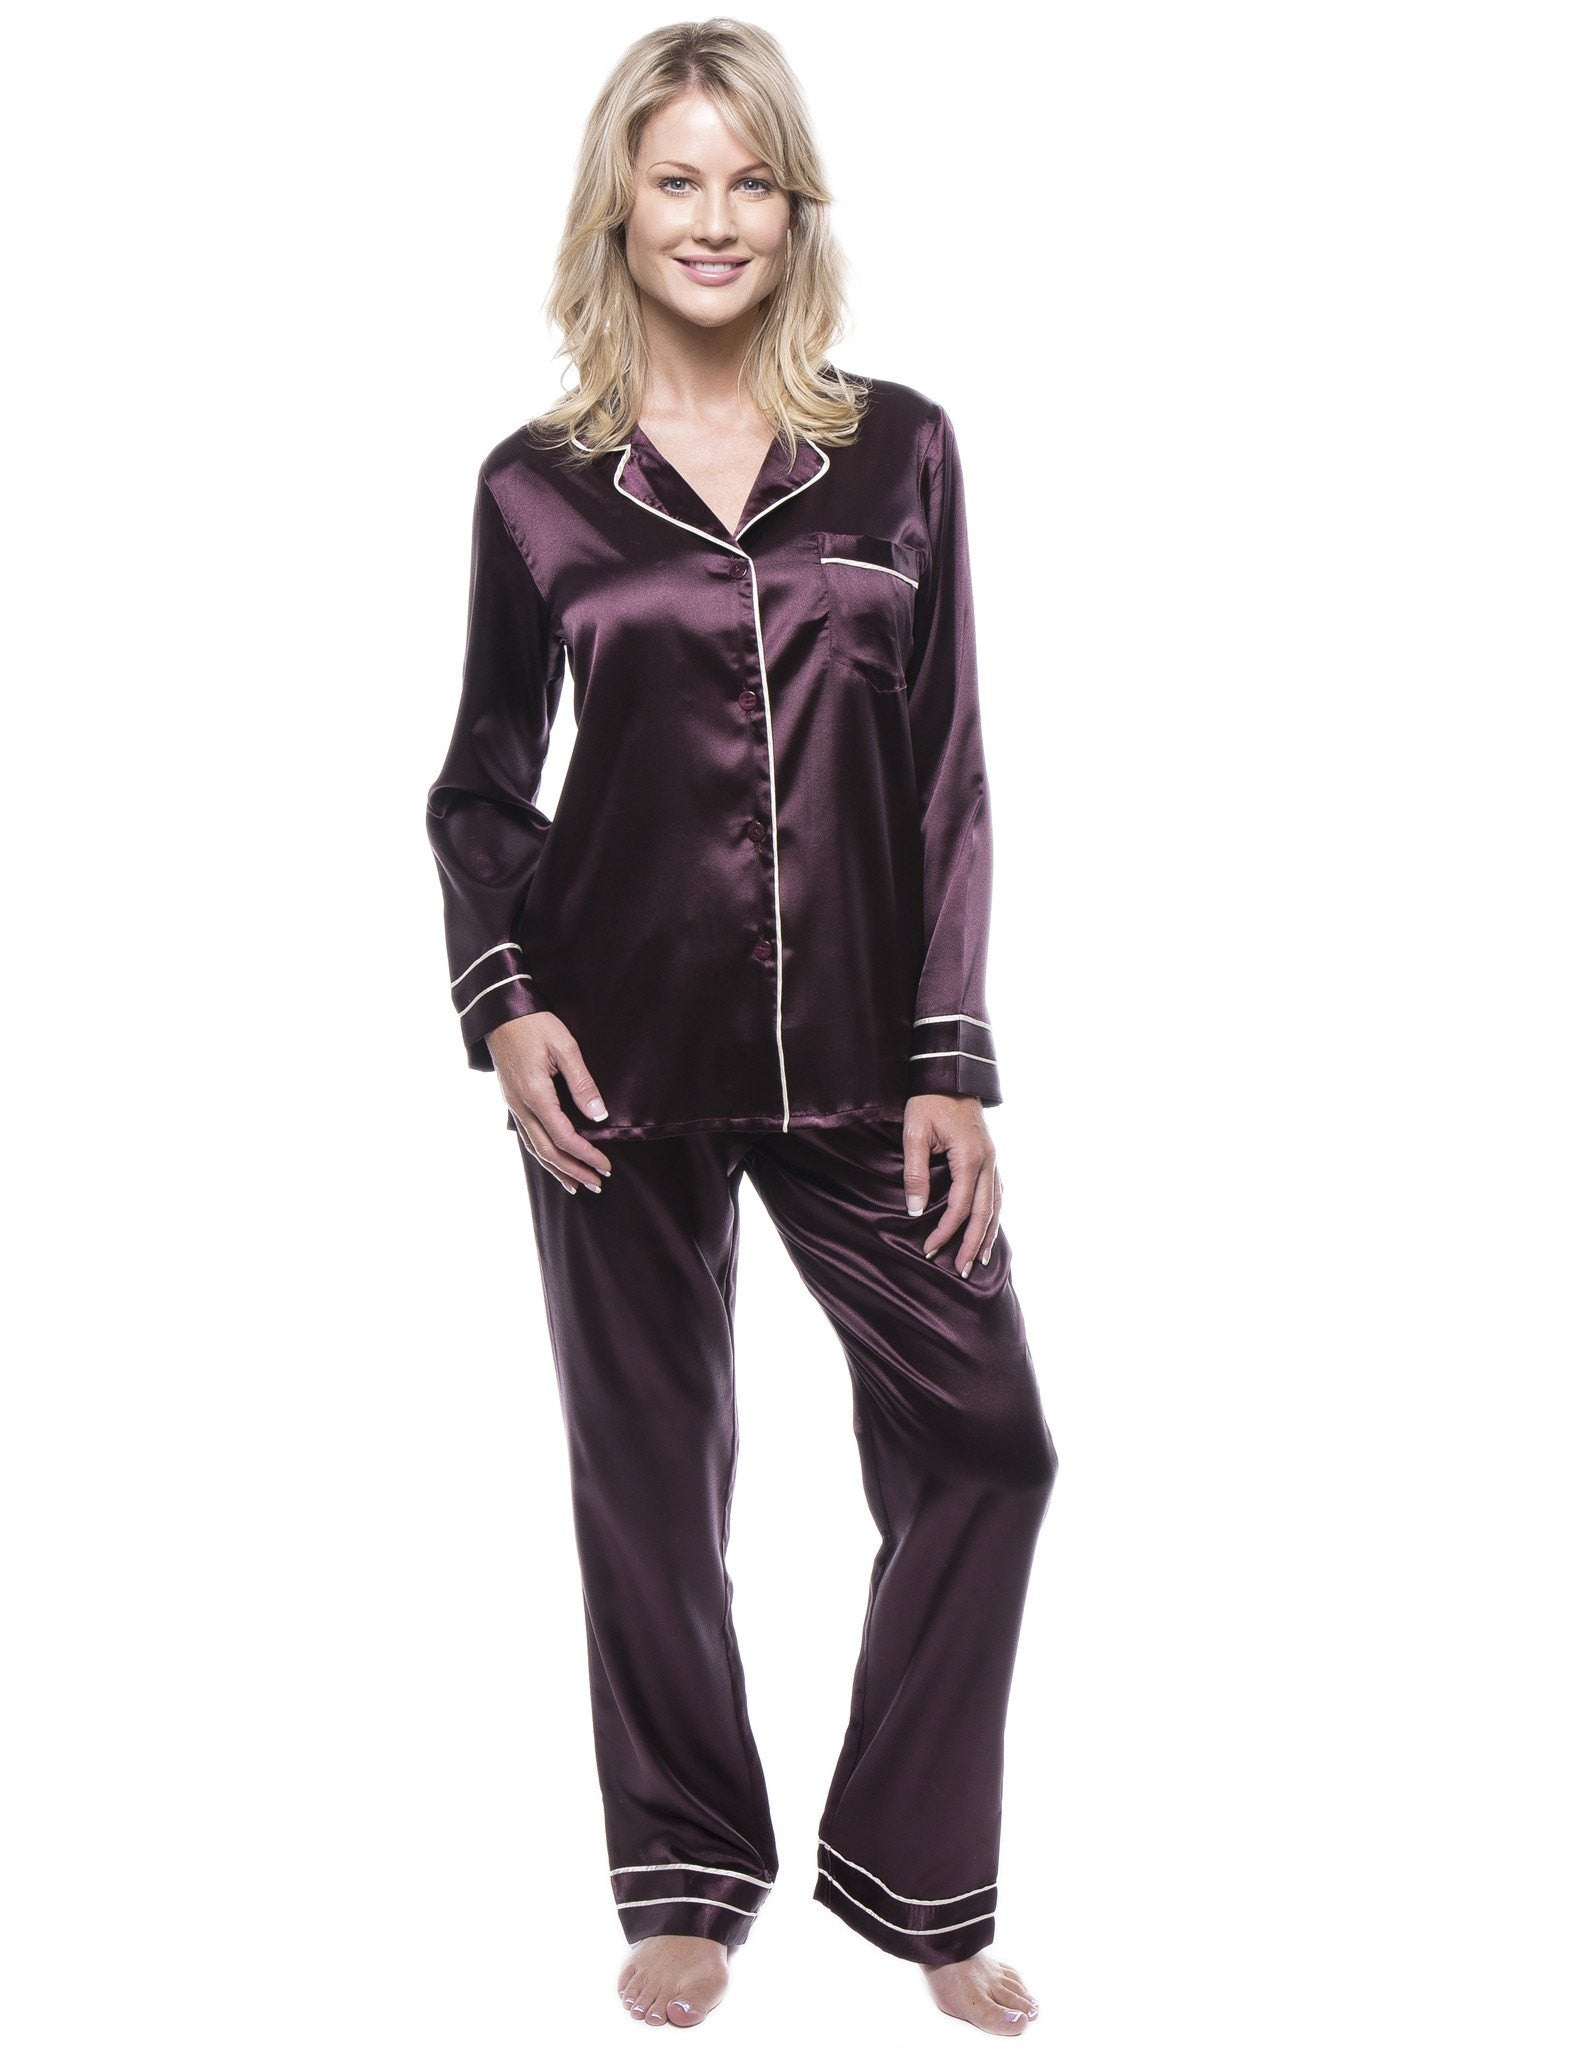 We offer women's satin sleepwear to wear. Filter satin sleepwear for women by size, color, brand, style, and taste. Get Free Shipping at HerRoom.